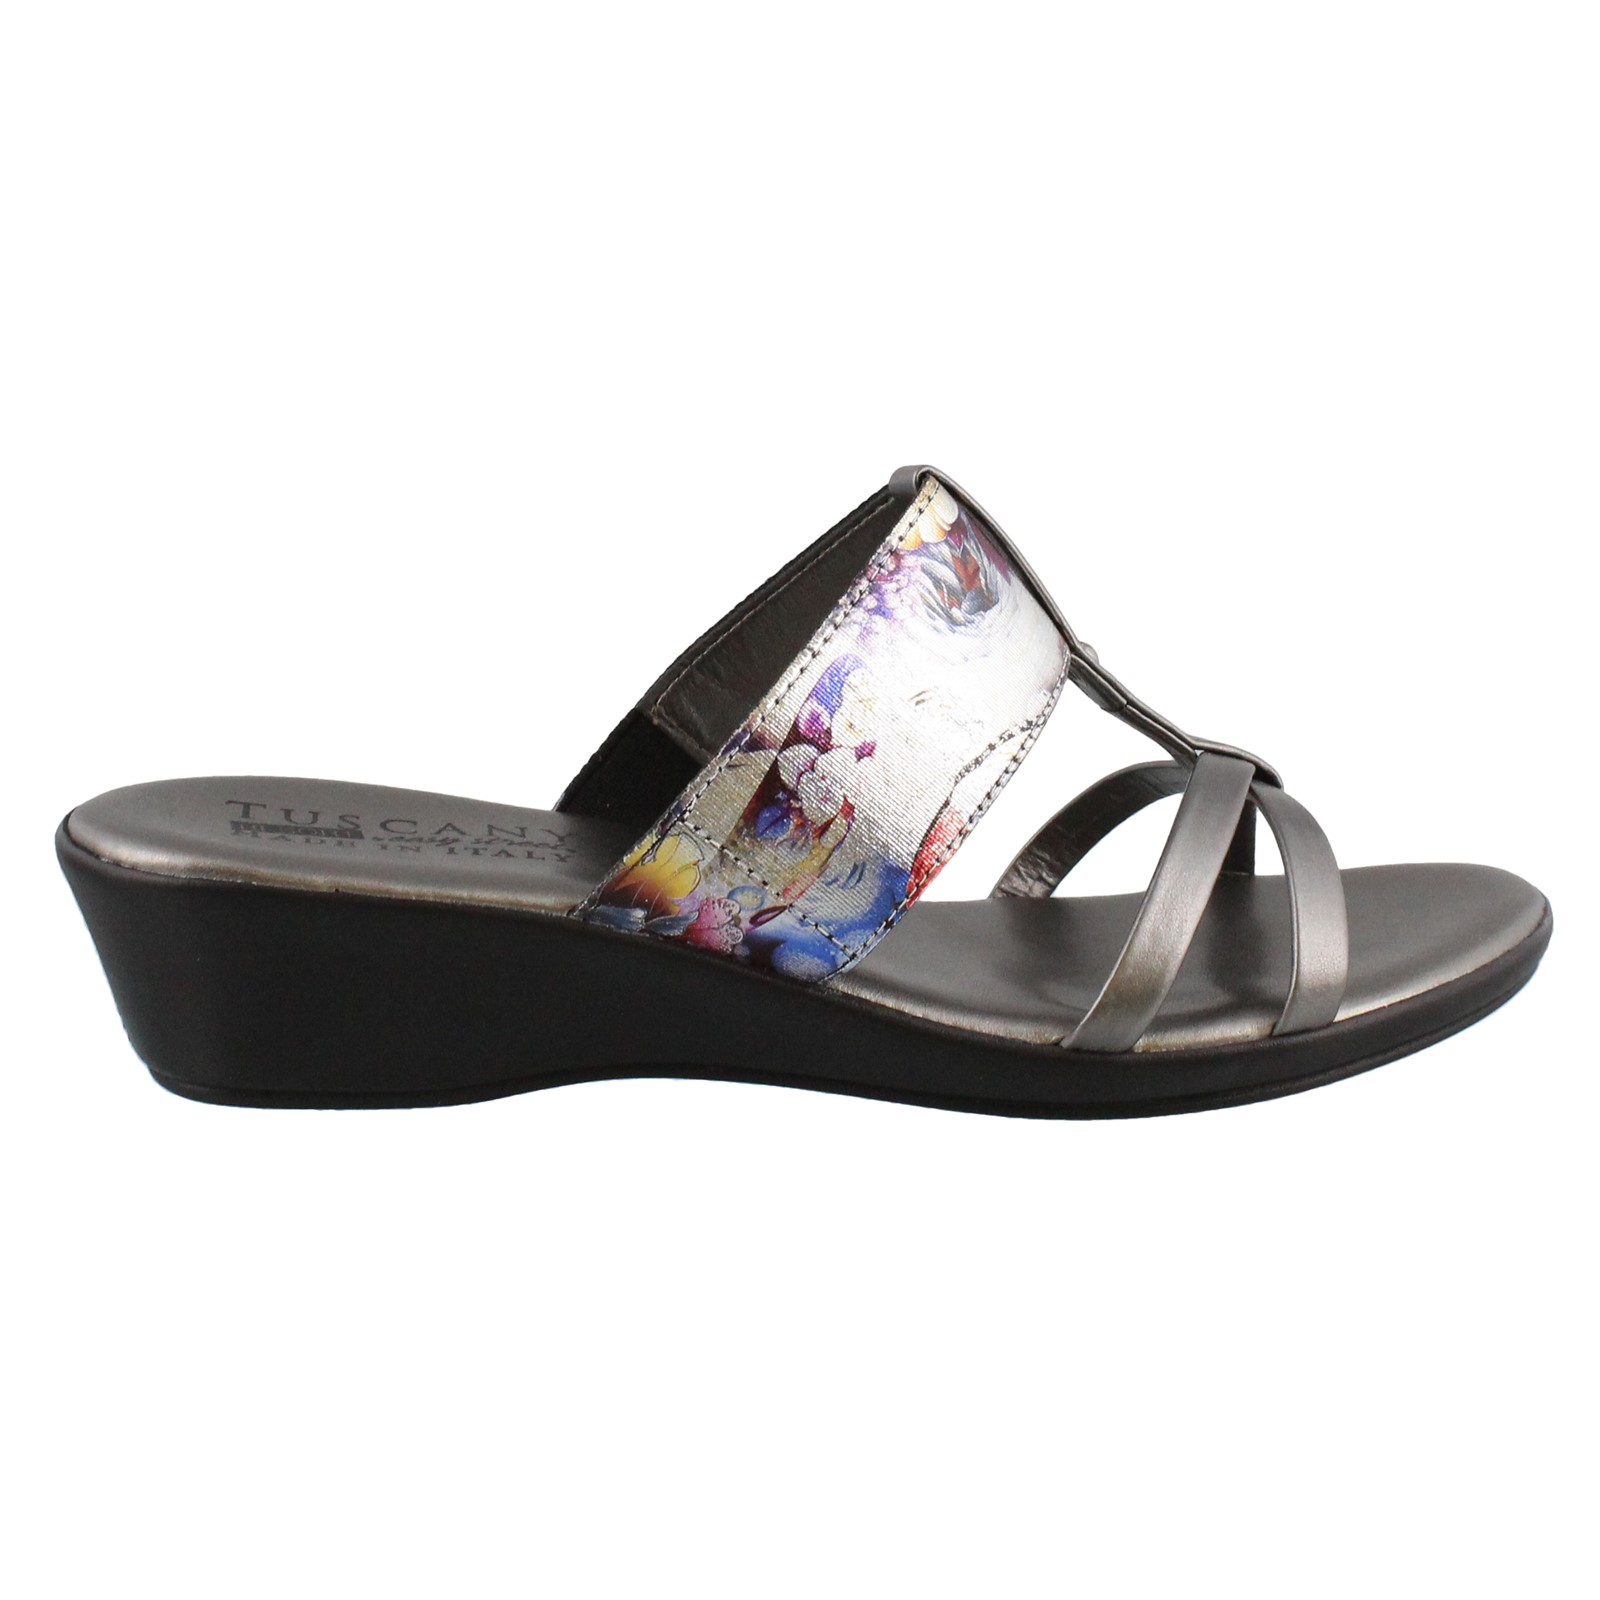 Women's Easy Street, Brio Low Heel Wedge Sandals